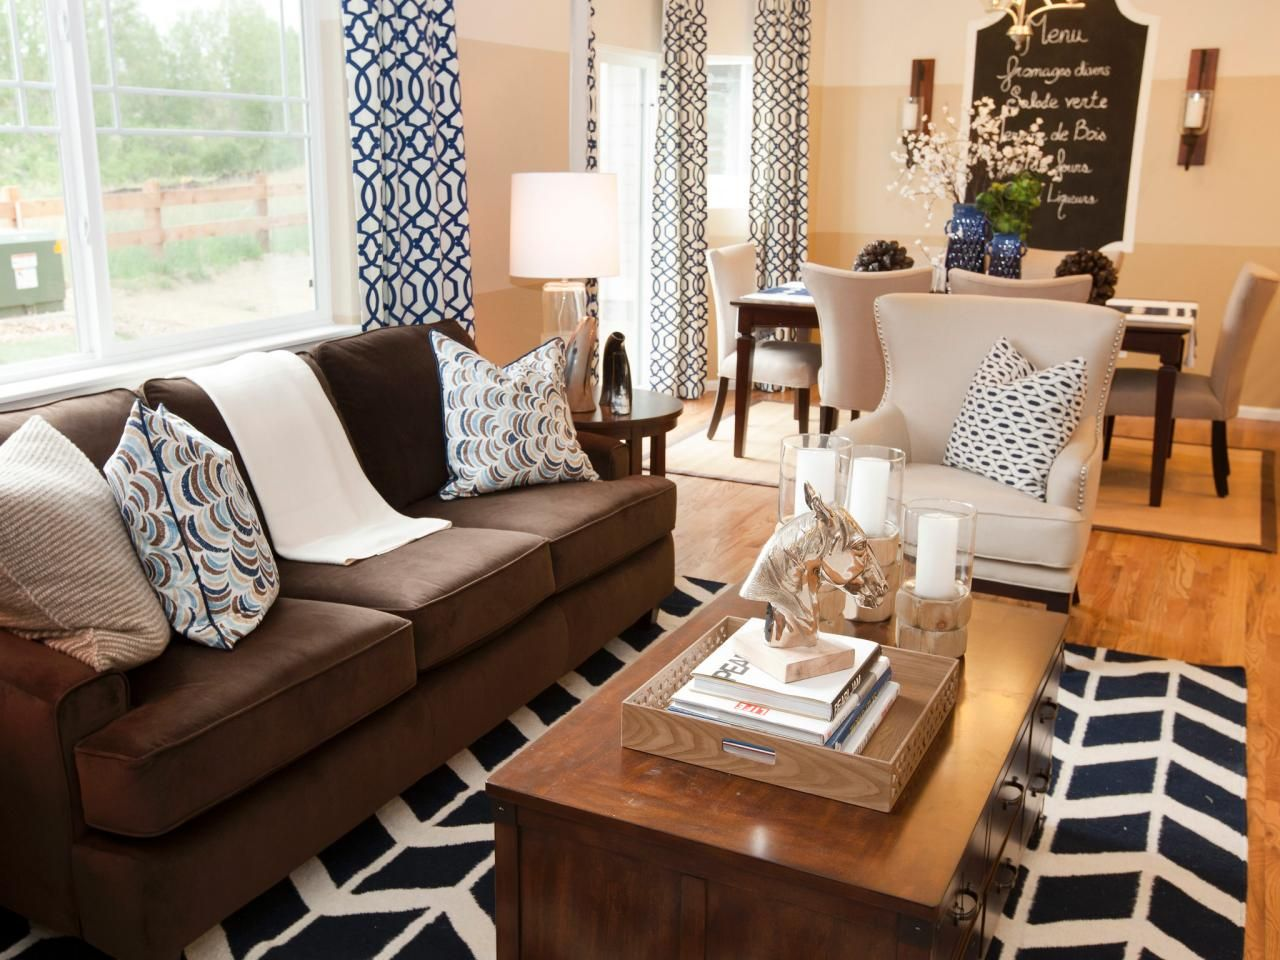 Bold, graphic, black-and-white patterned curtains, pillows and a rug